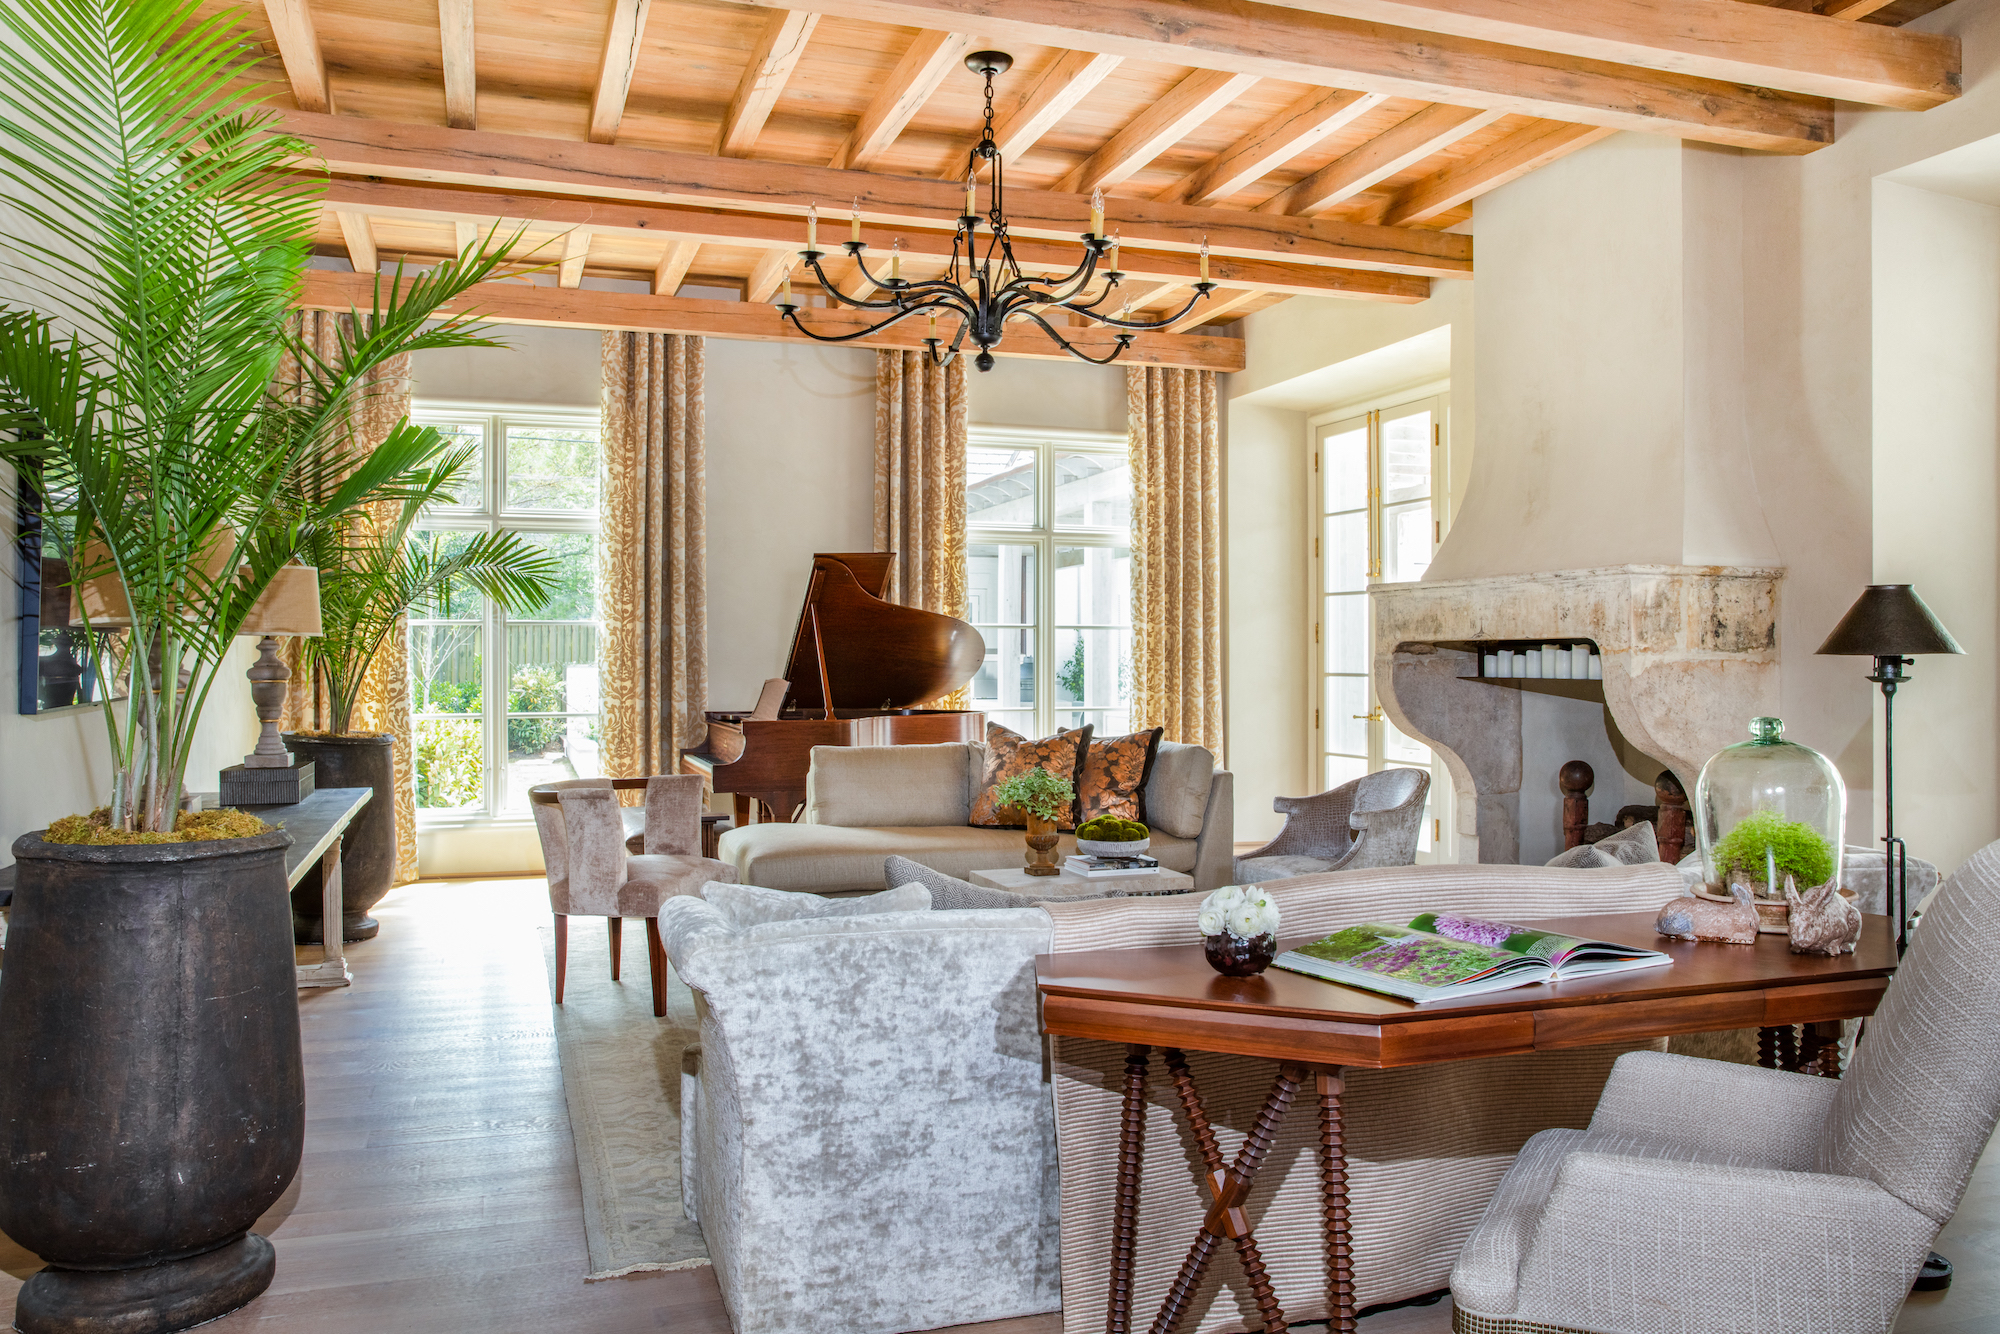 Carlton Edwards-interior design firm-Memphis decorates living space with cypress ceiling